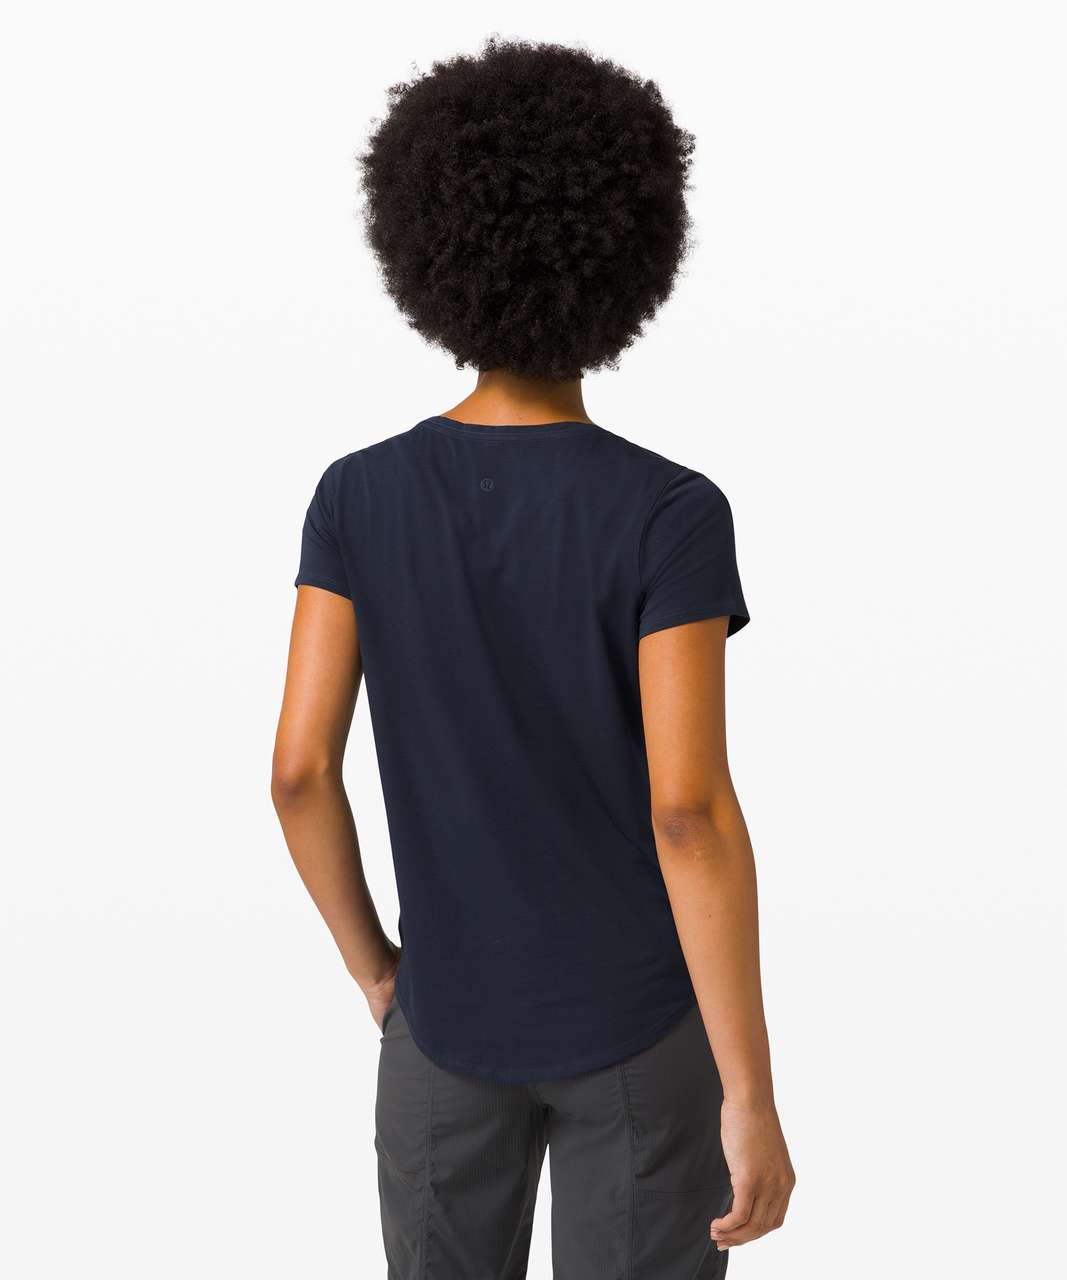 Lululemon Love Tee V - True Navy